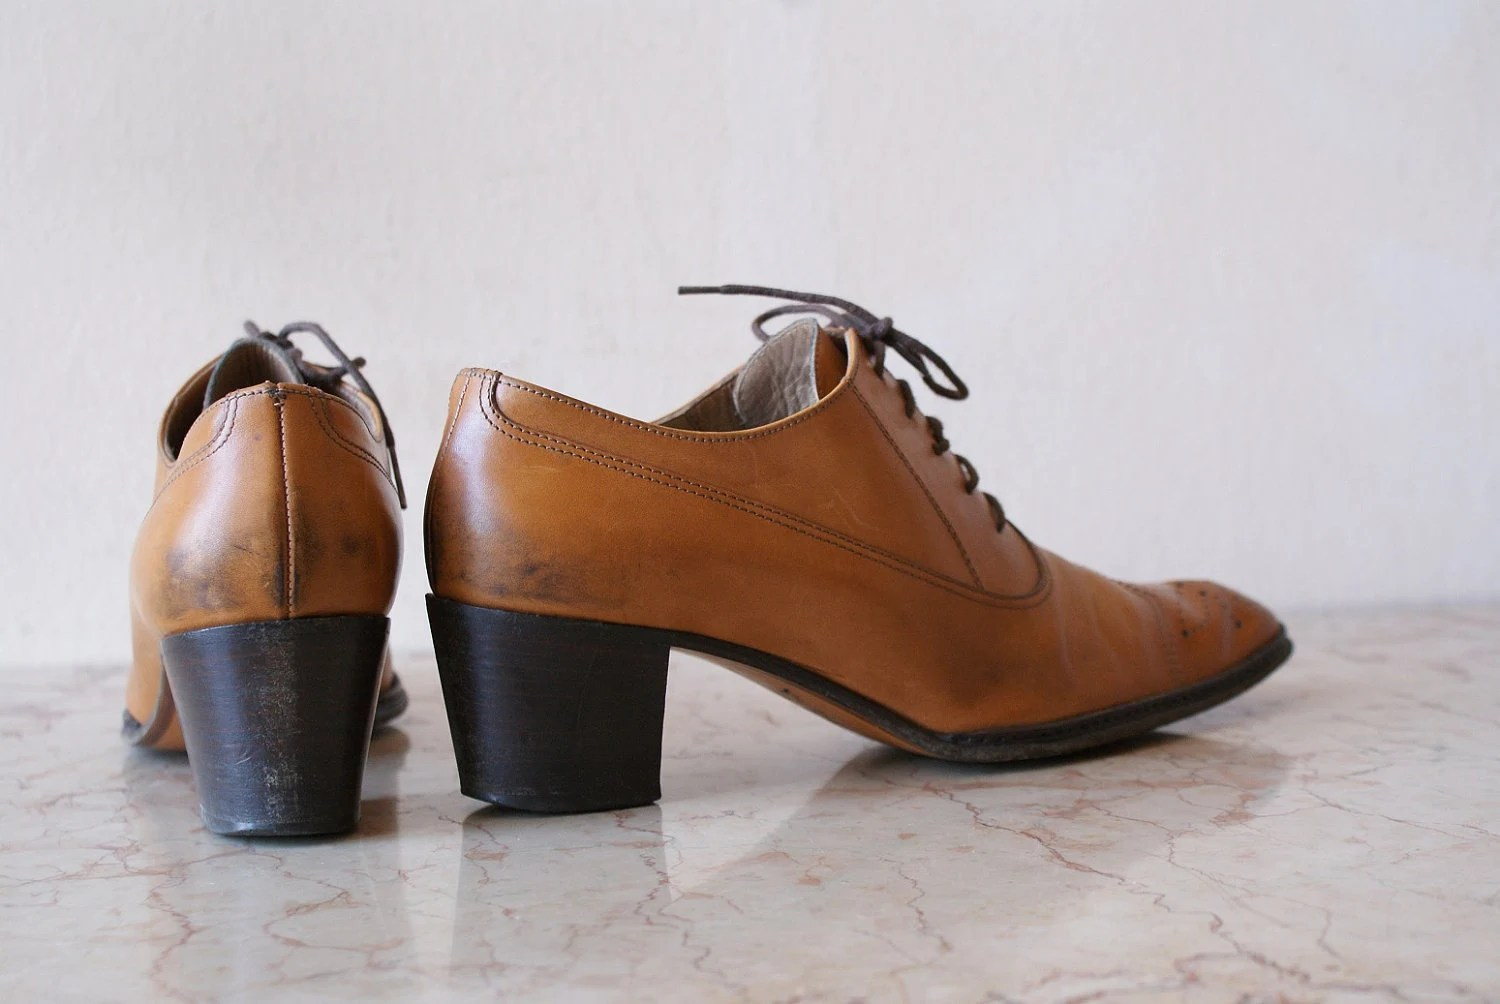 Caramel Colored Leather Fratelli Rossetti Oxfords with Wingtip Toes 7